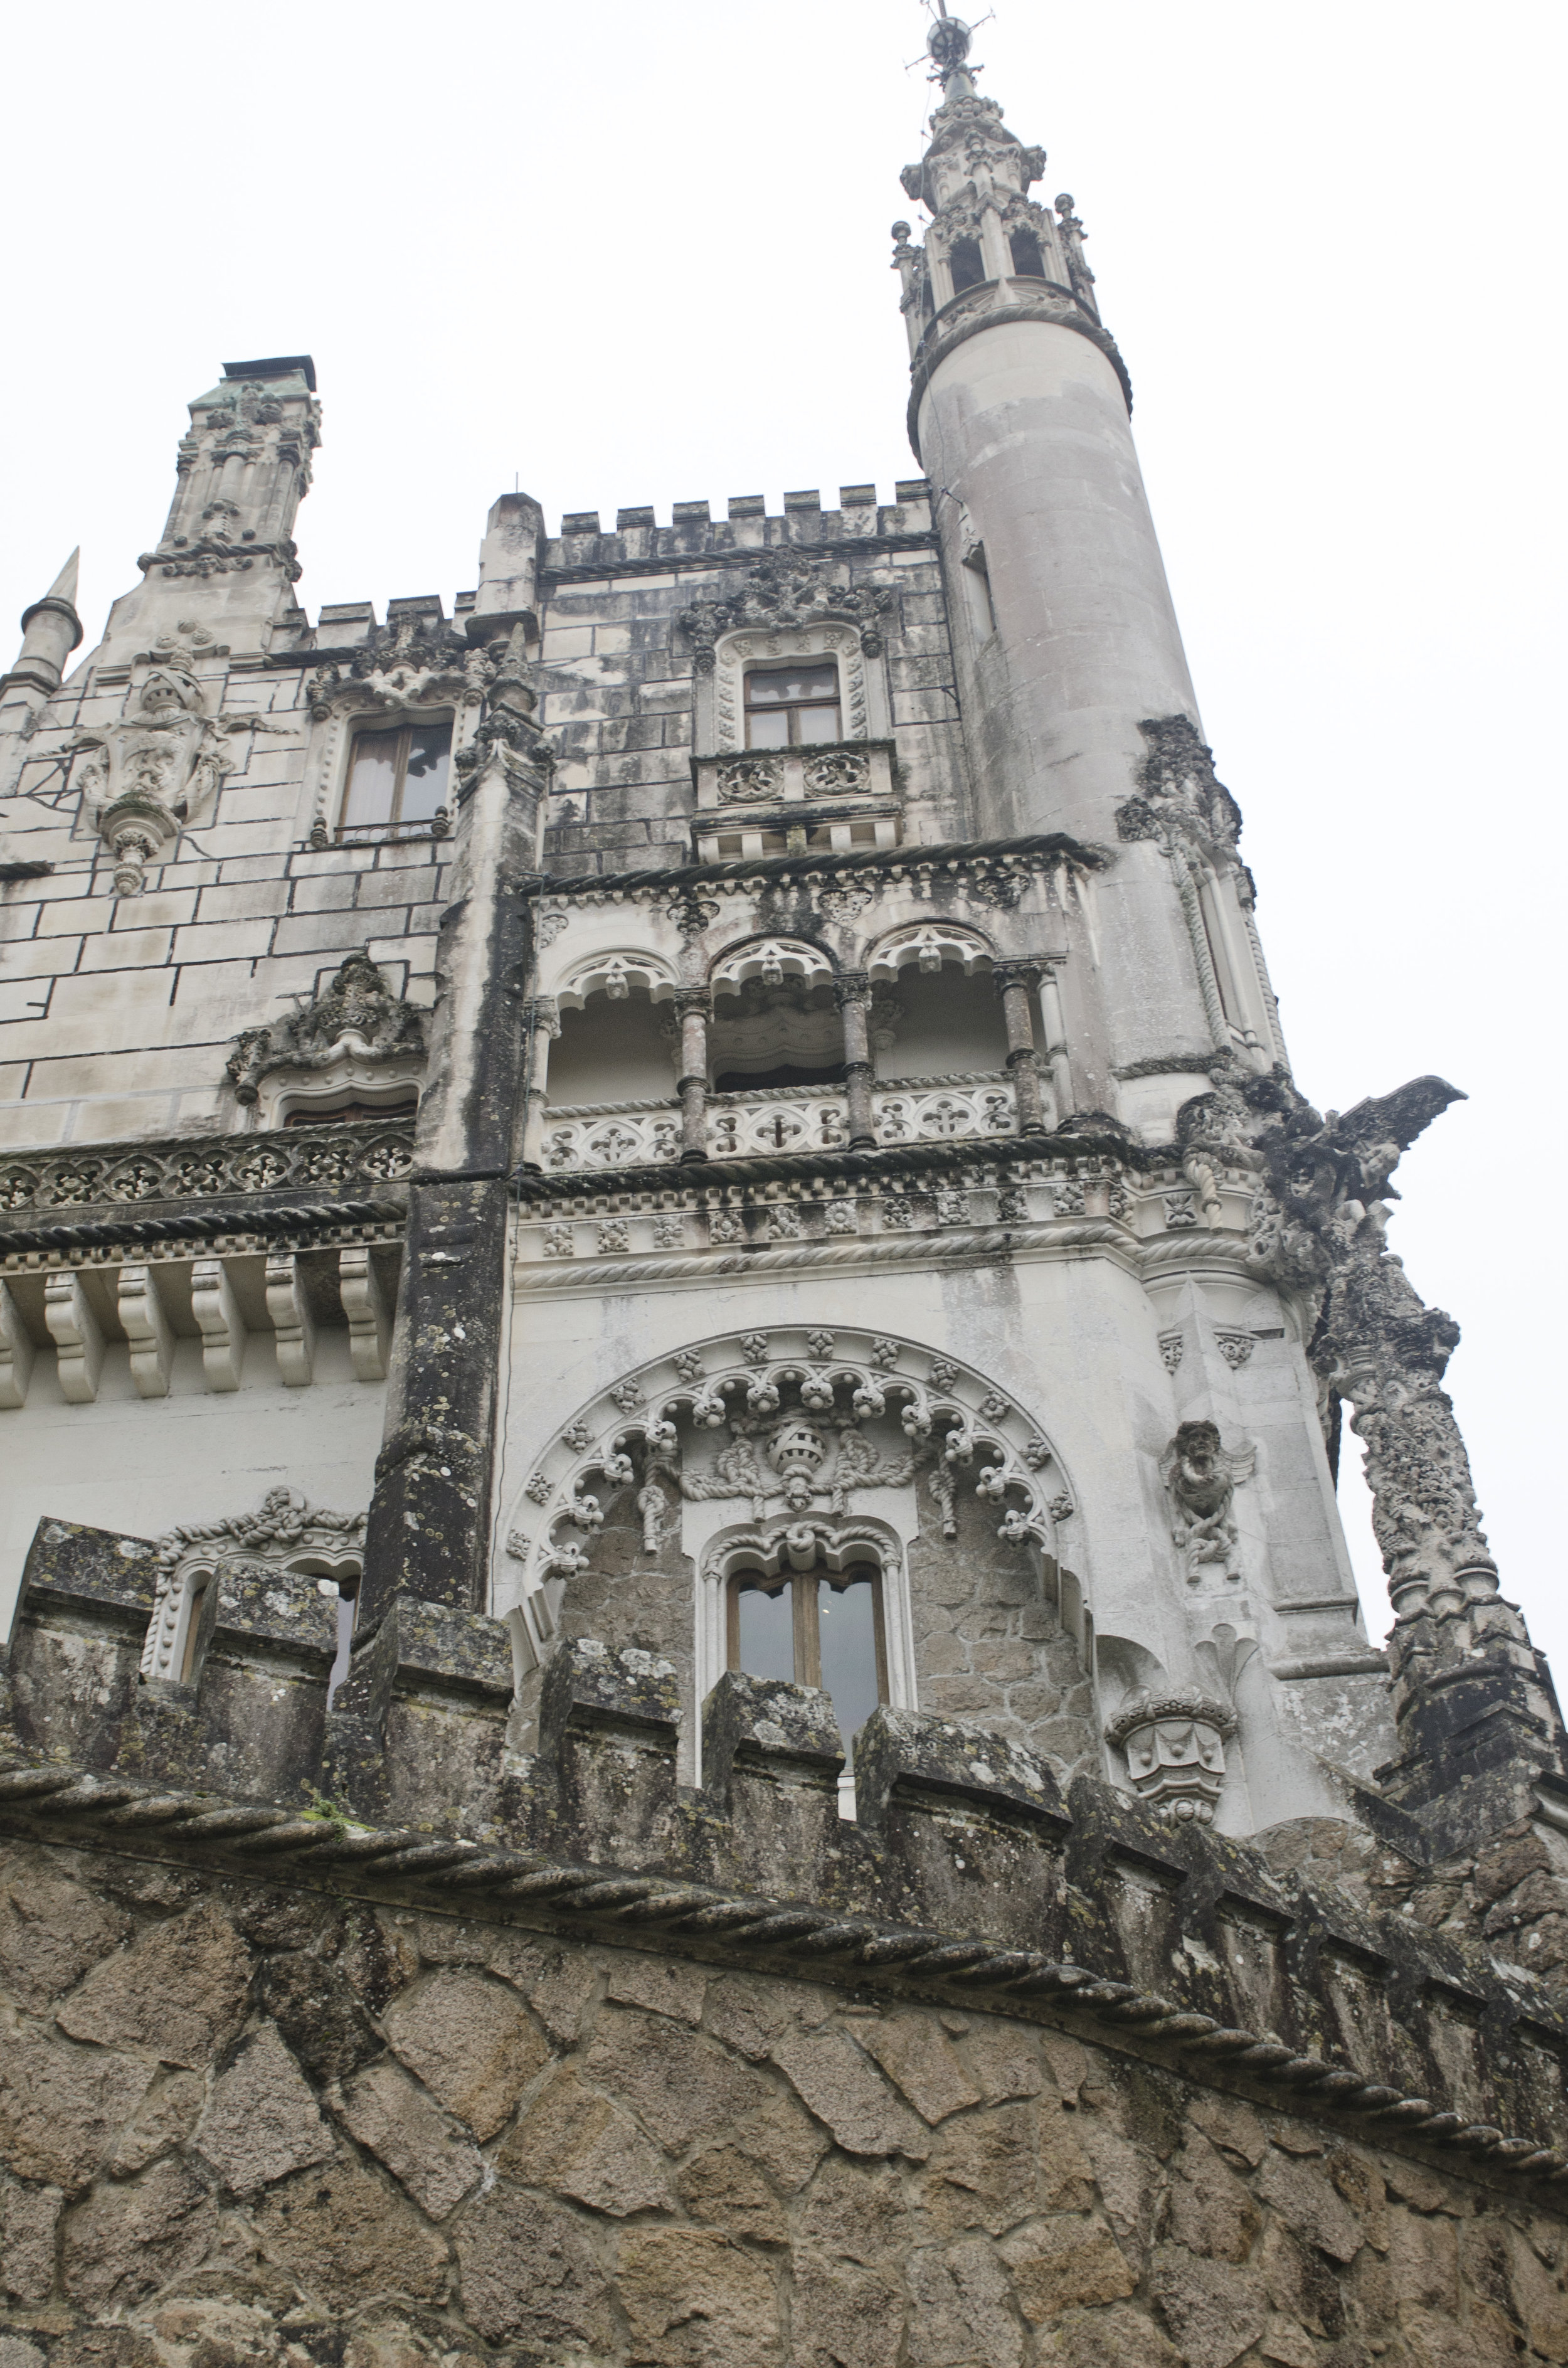 Our first glimpse of Quinta da Regaleira from the road